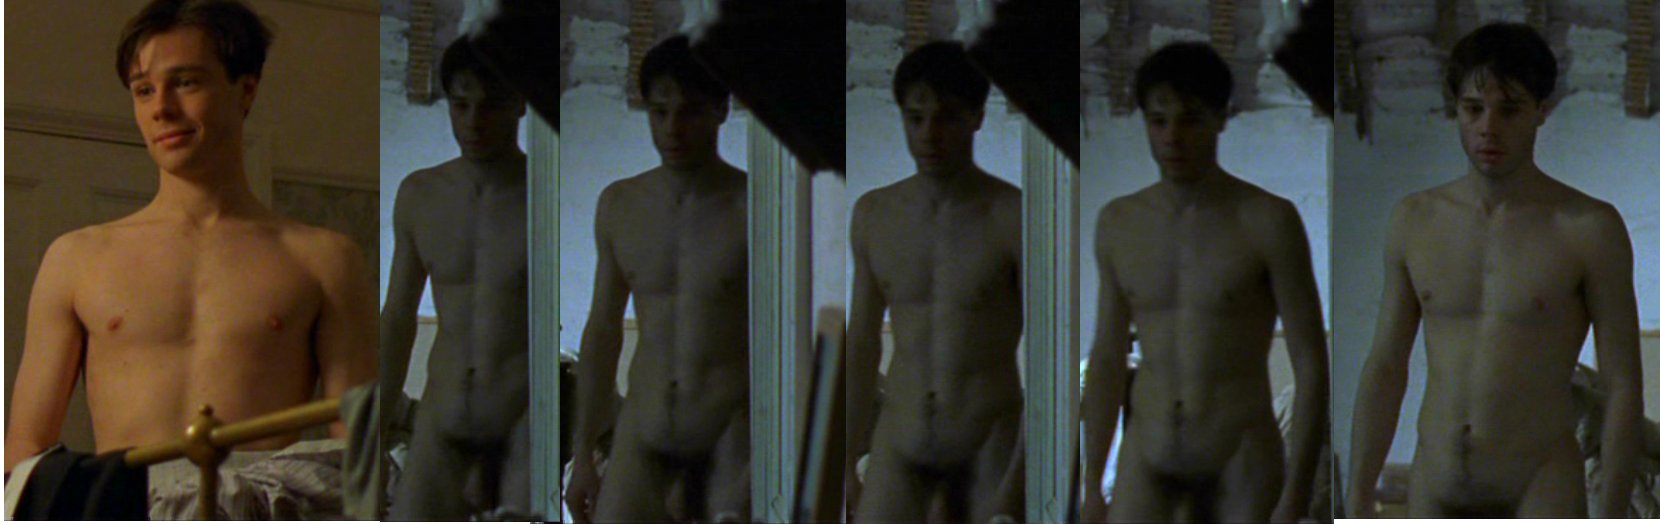 Have Rupert friend naked pic you hard